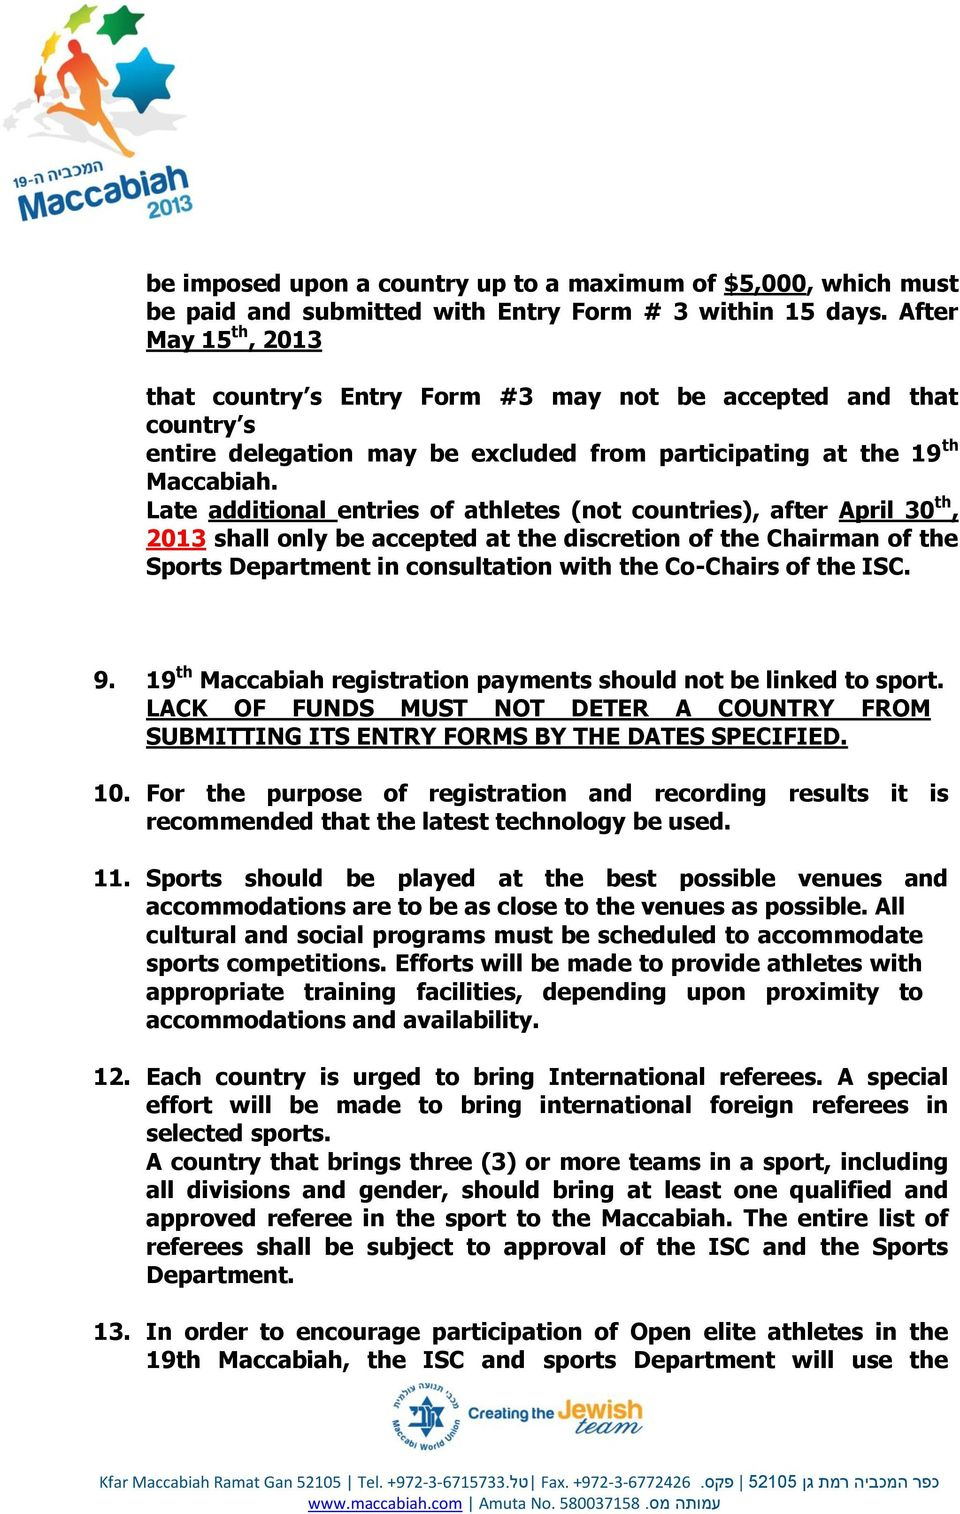 Late additional entries of athletes (not countries), after April 30 th, 2013 shall only be accepted at the discretion of the Chairman of the Sports Department in consultation with the Co-Chairs of